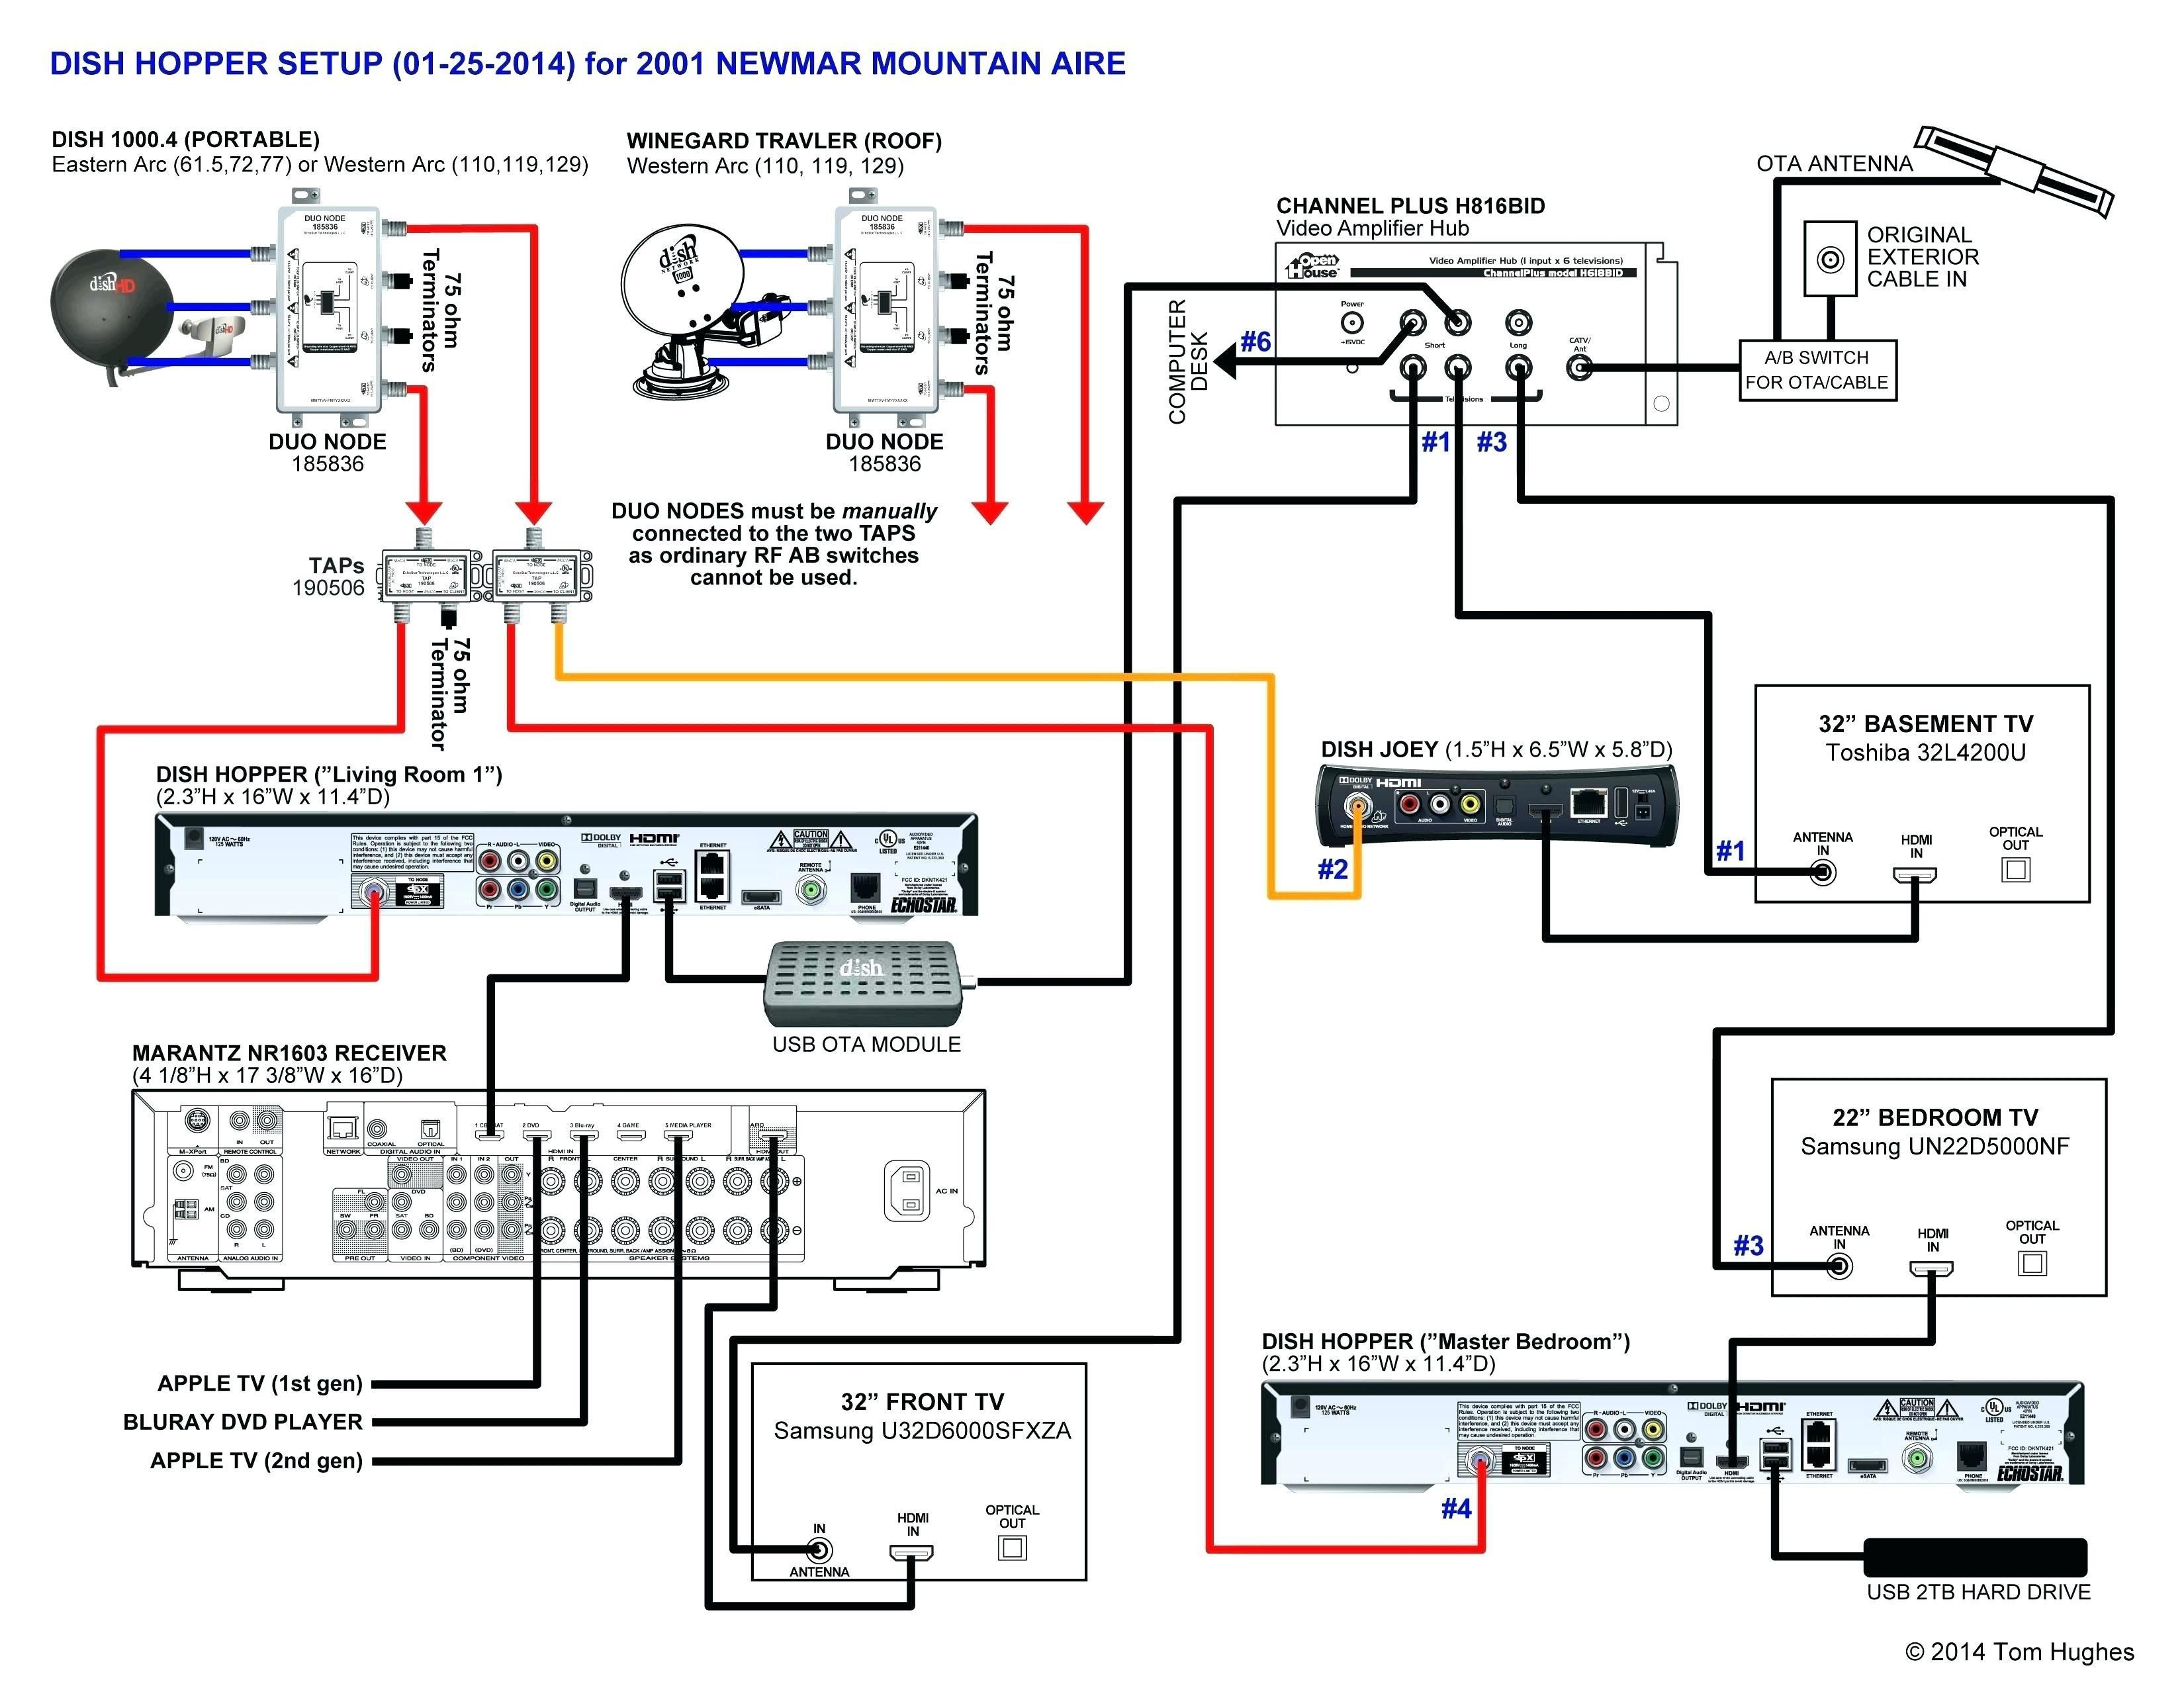 [DIAGRAM_38IU]  Unique Home Wiring Diagram Sample #diagram #diagramsample #diagramtemplate # wiringdiagram #diagramchart #worksheet #worksh… | House wiring, Diagram, Circuit  diagram | Wiring Diagram Freezerless Refrigerator |  | Pinterest